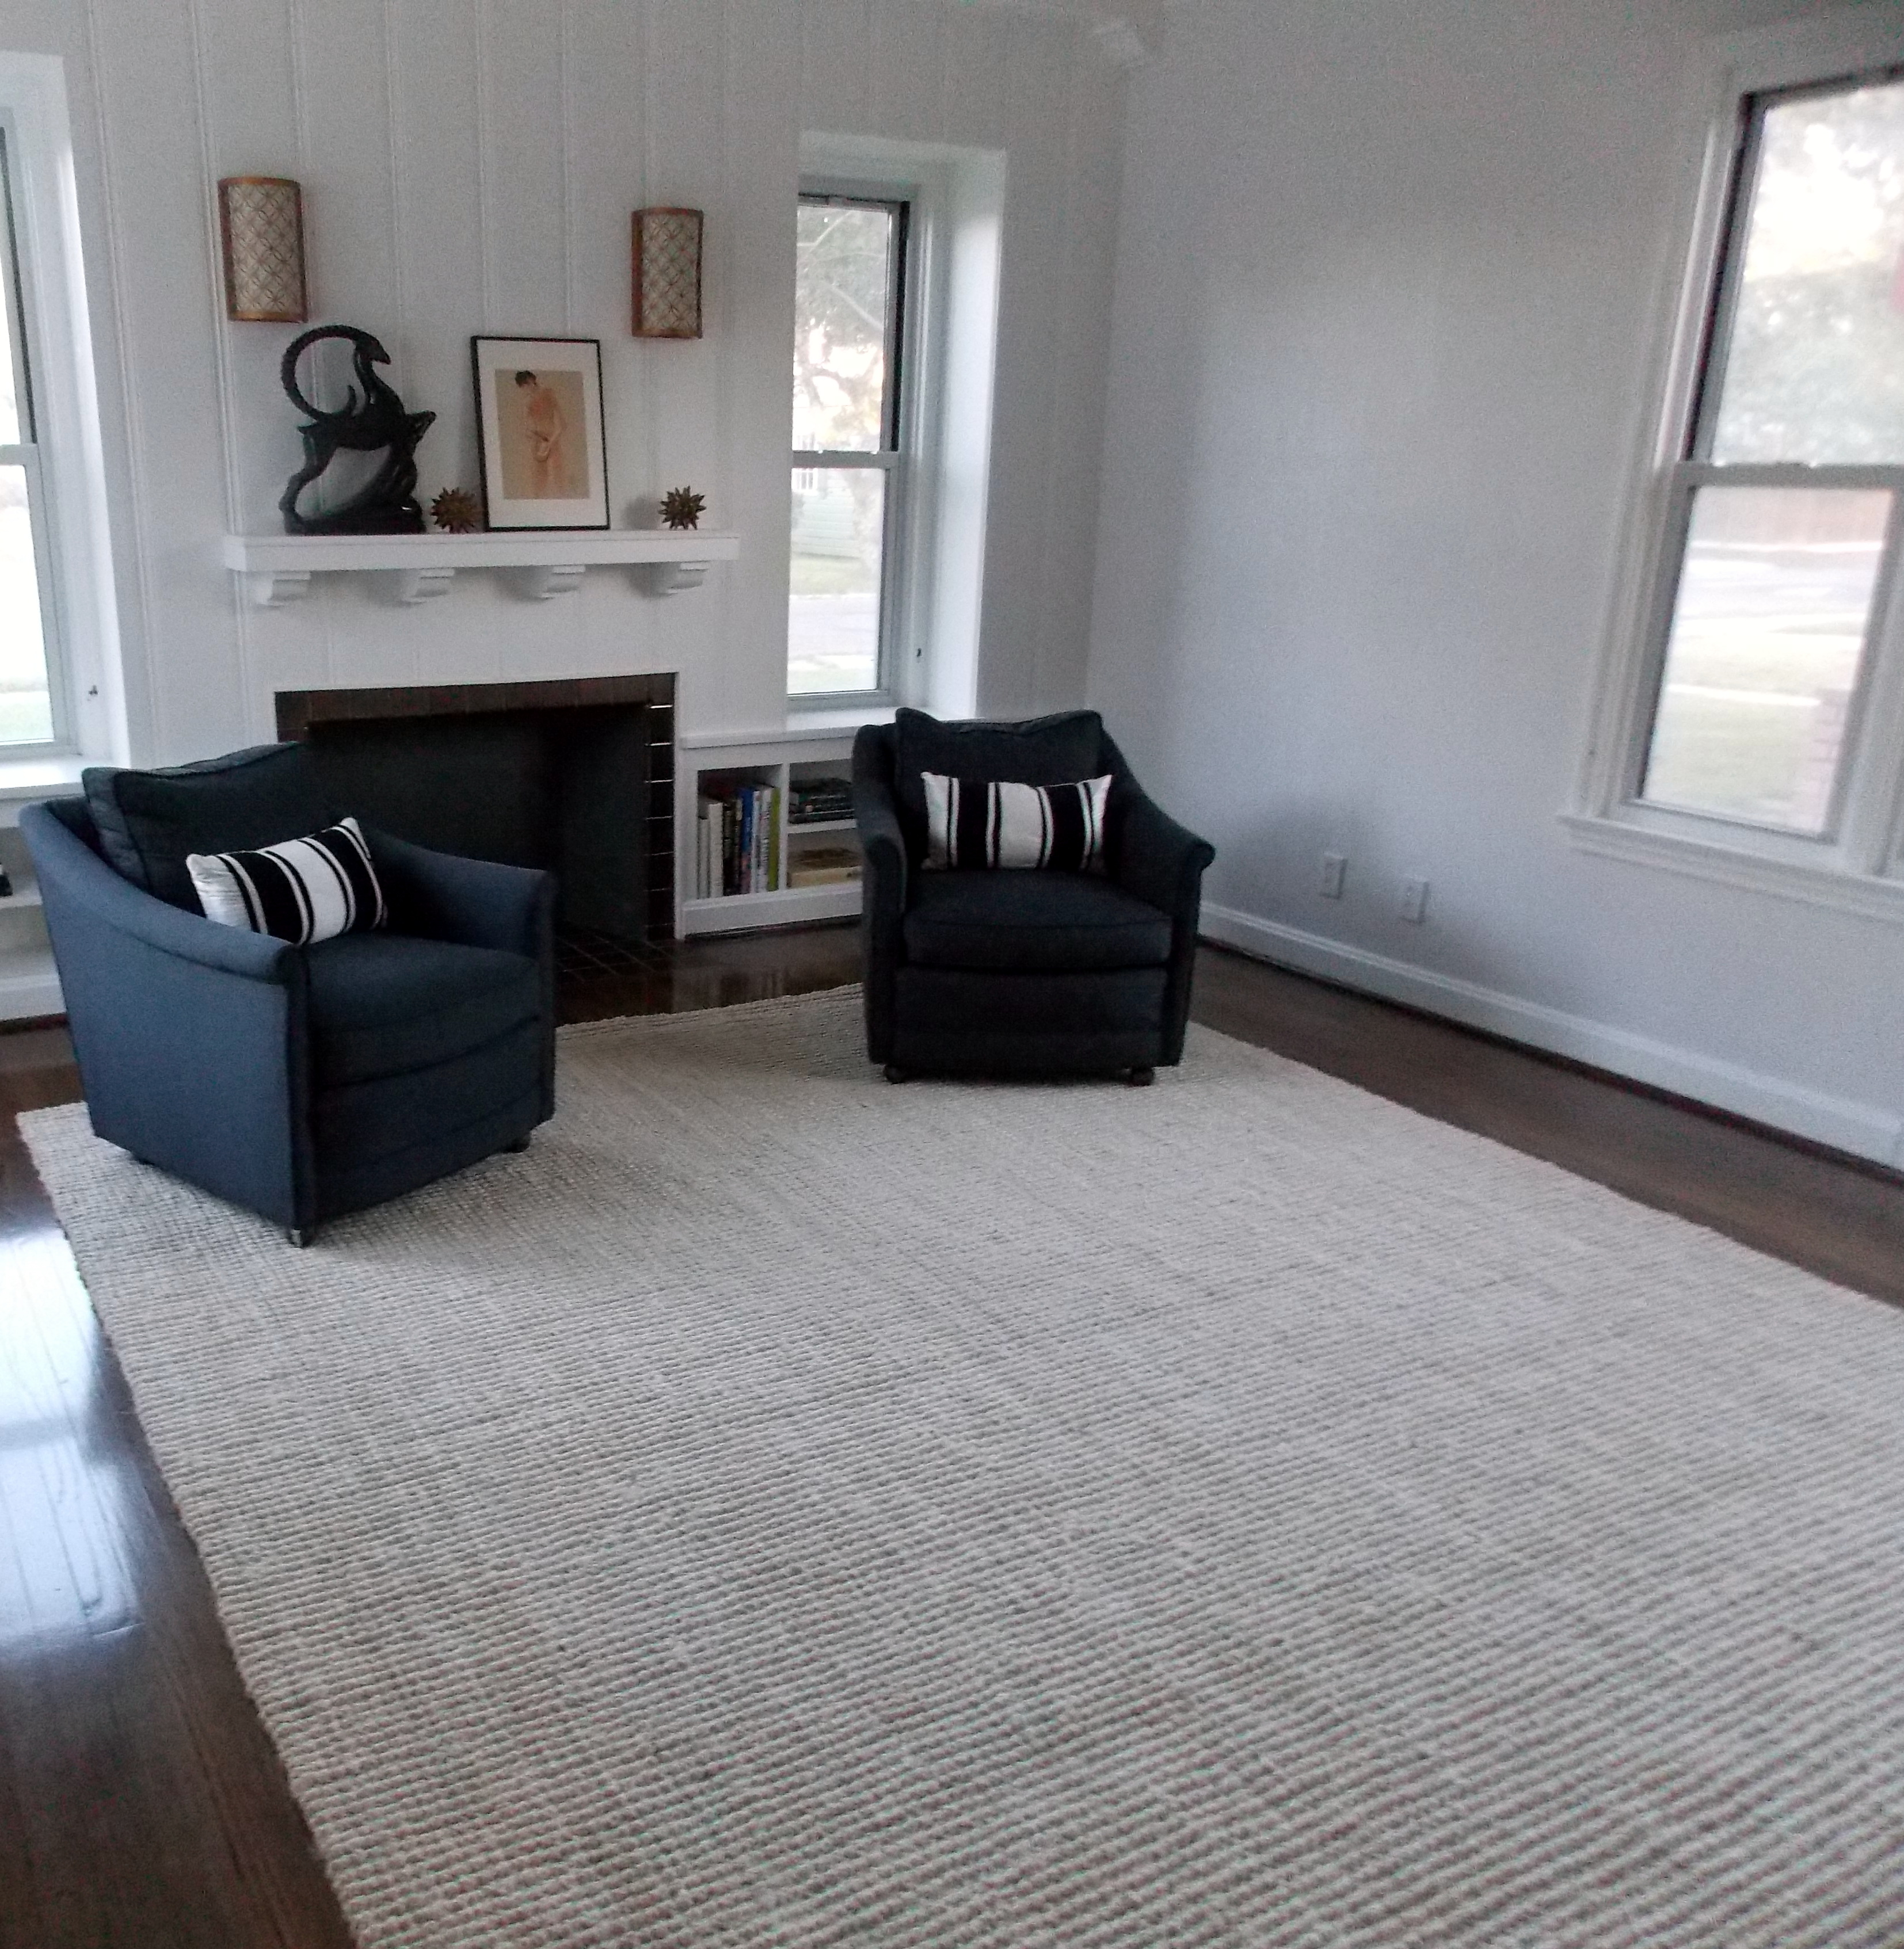 Washable Jute Rugs: Easy Tips How To Clean Up Your Beautiful Jute Rugs Without